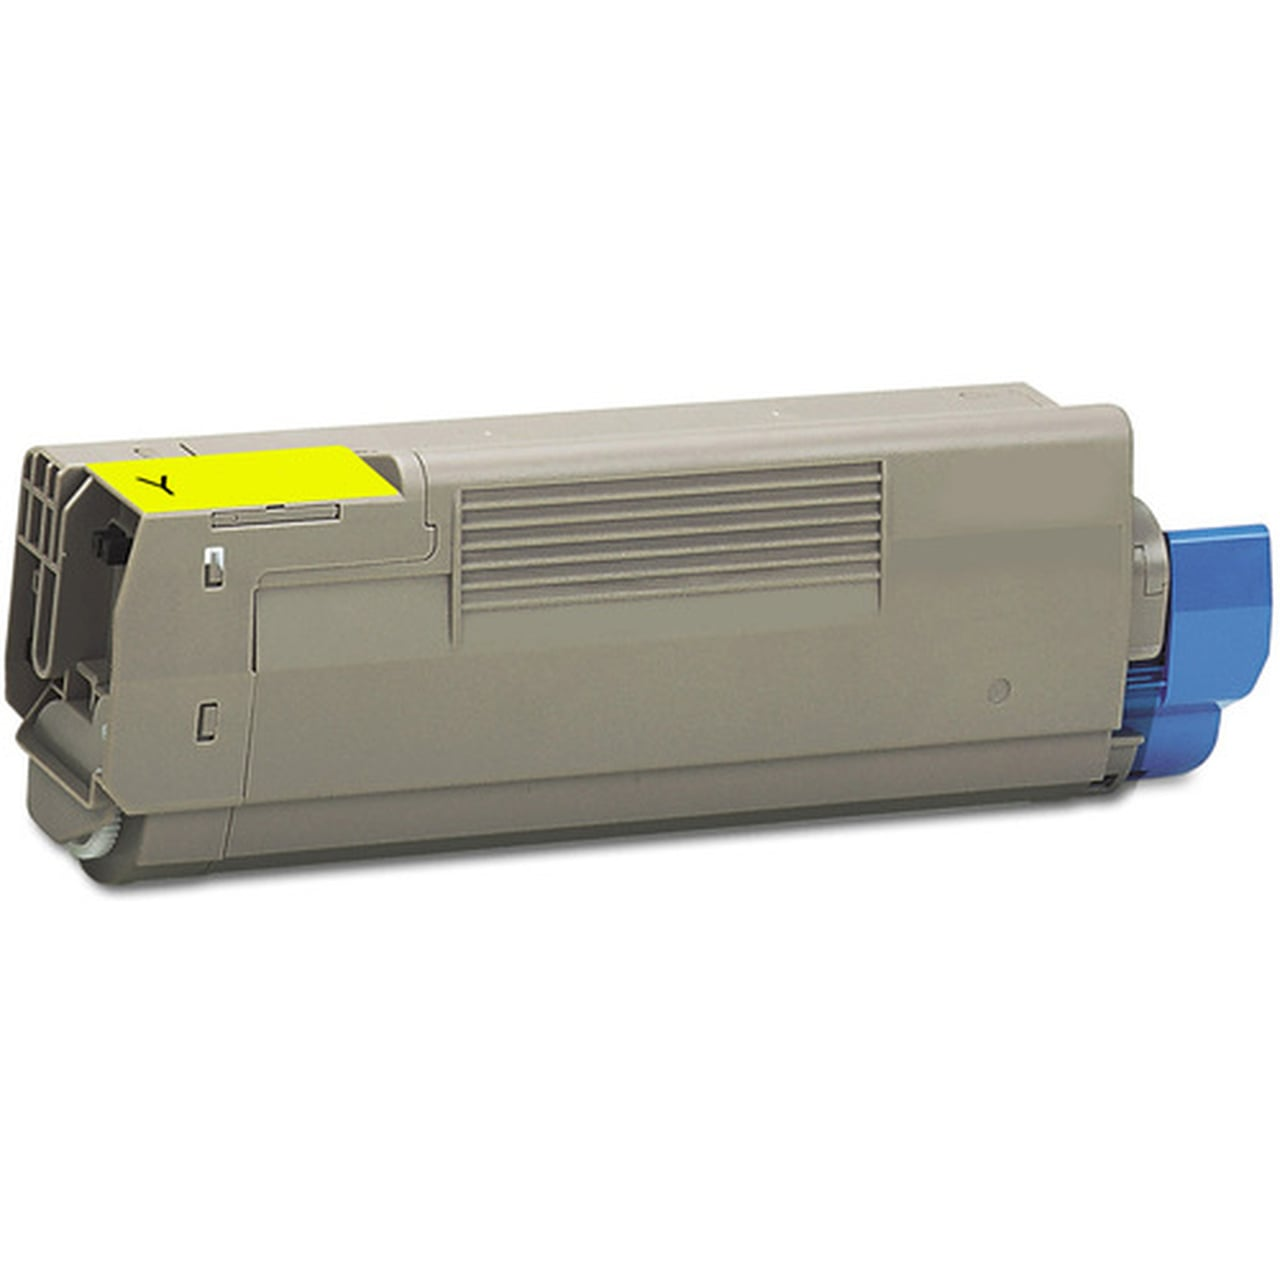 43324401 Toner Cartridge - Okidata Compatible (Yellow)